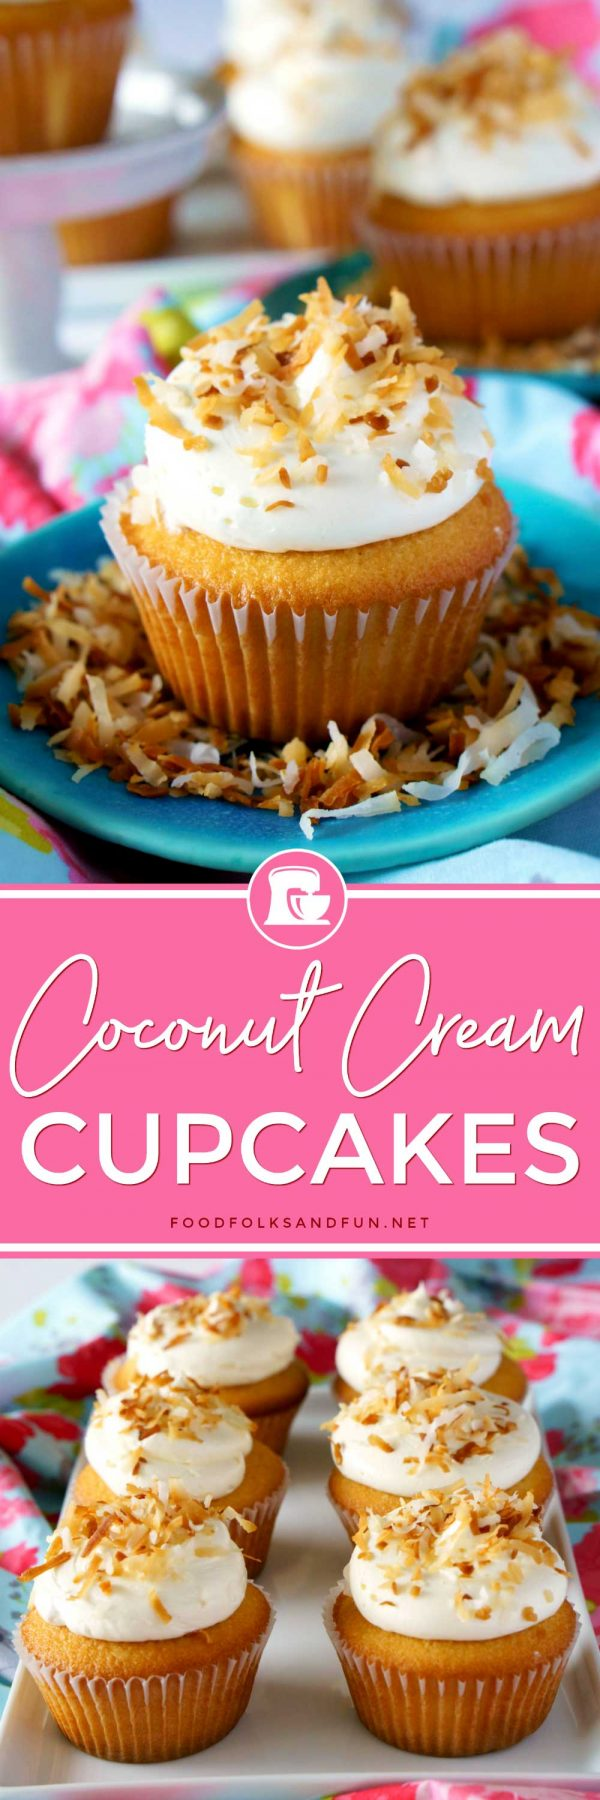 a collage of Coconut Cream Cupcakes with text overlay for Pinterest